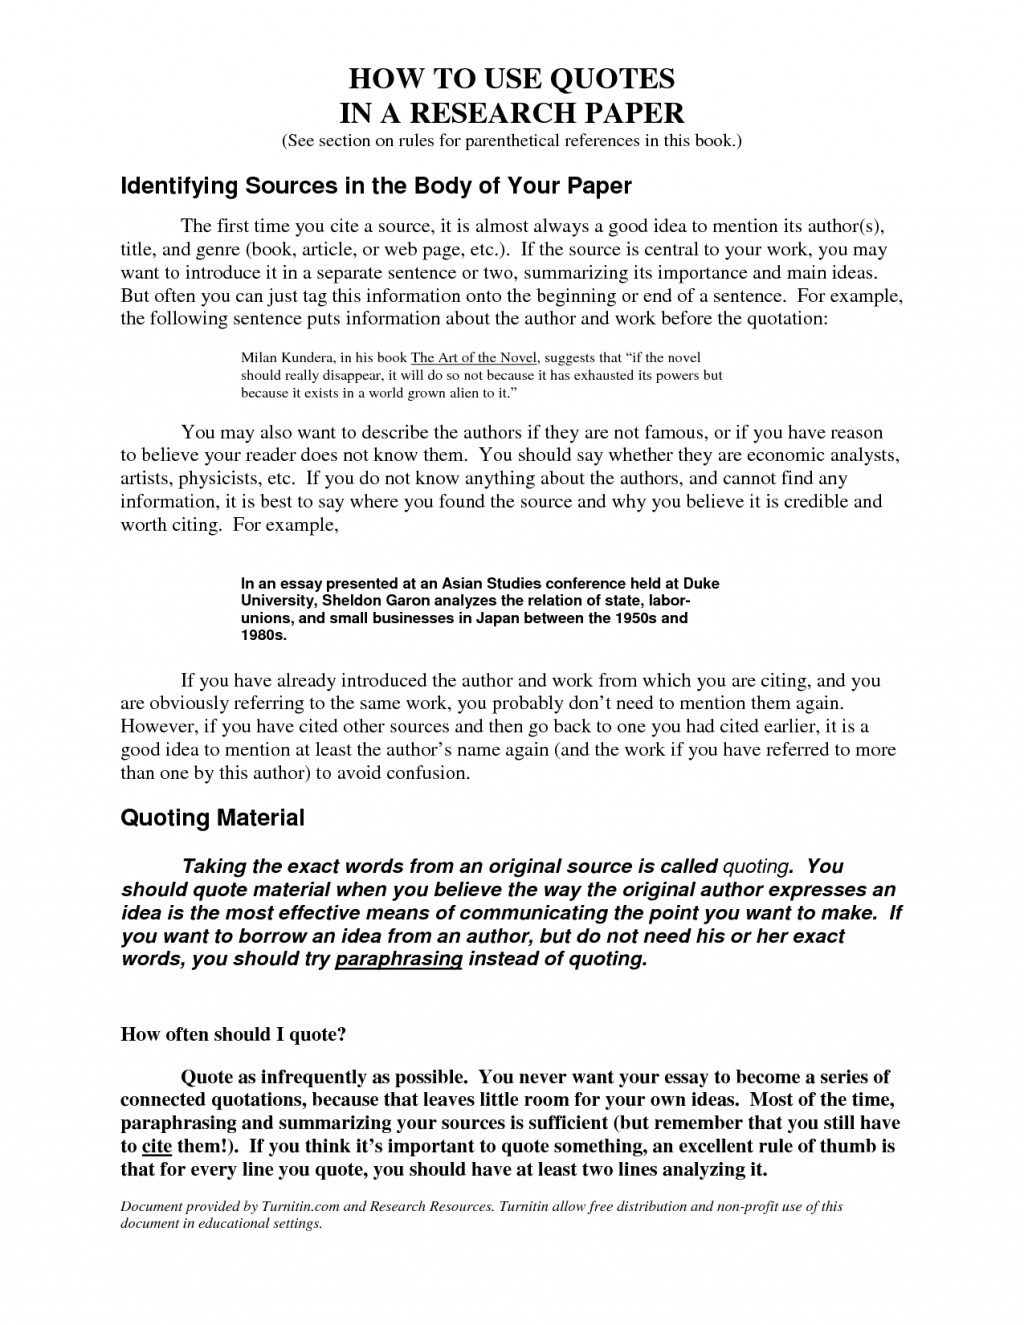 004 Essay Example Quotes Best Solutions Of Writing In Essays Marvelous Embedding On Incredible Topic Wise For Upsc Internet Hindi About Life Large